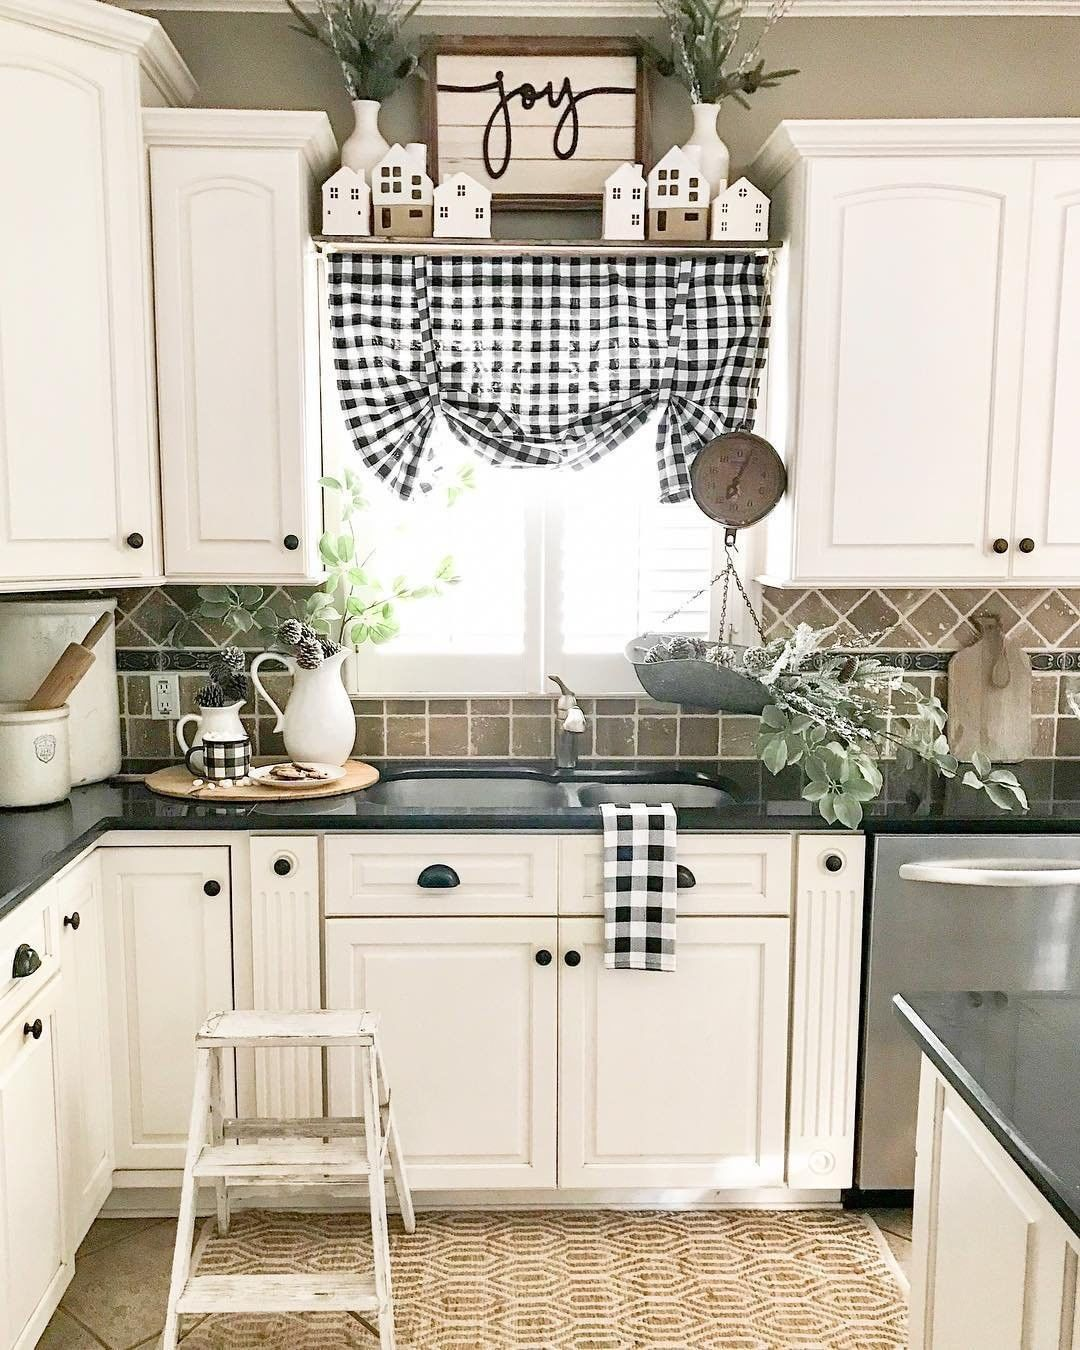 3666883c9f15b1046b4320060914d25a - Better Homes And Gardens Cabinet Makeover